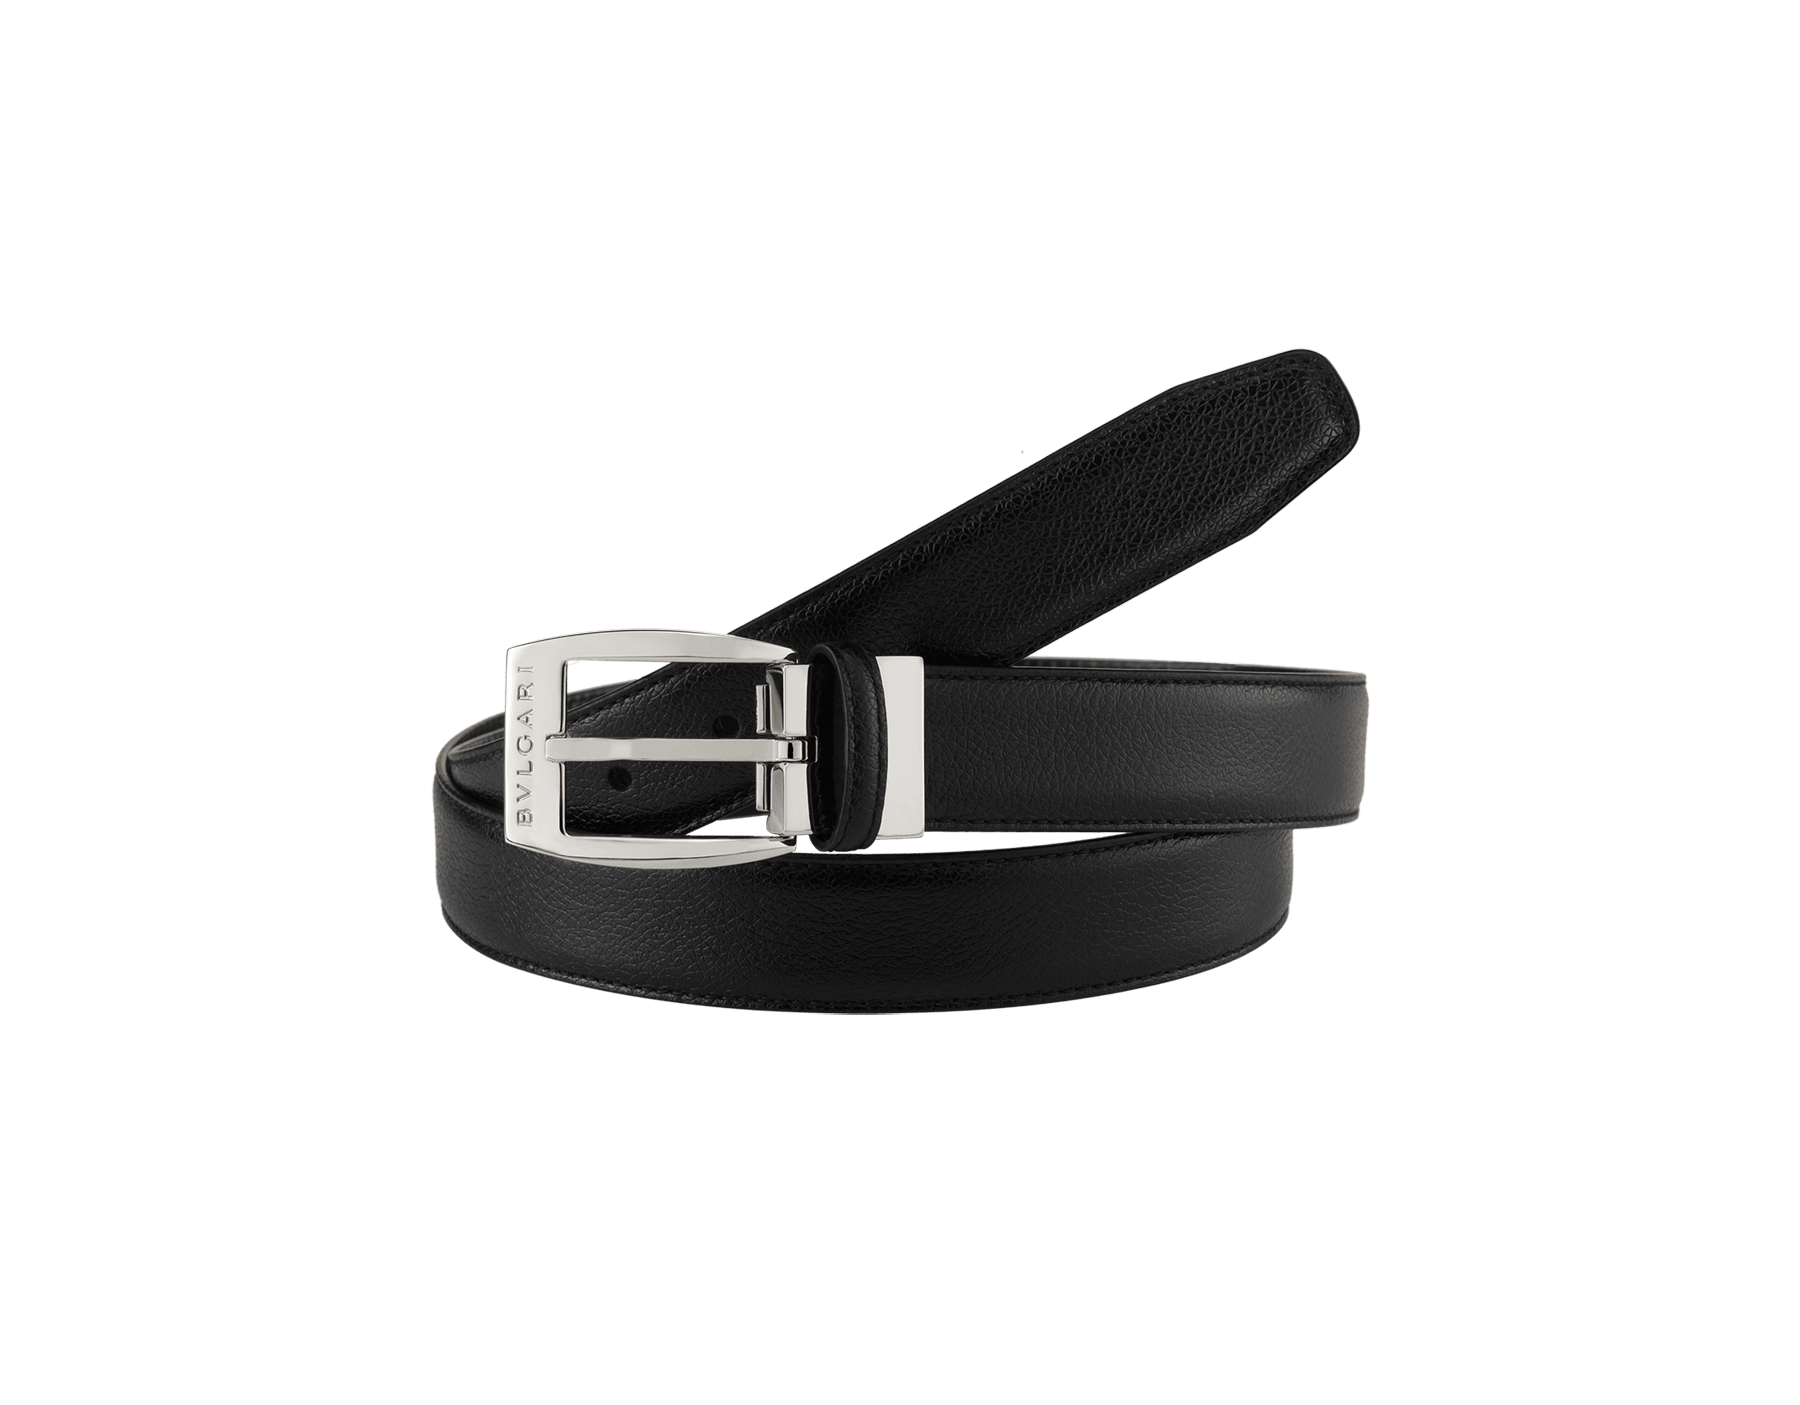 Black country calf leather belt for men with Ellipse closure in brass palladium plated hardware. Also available in other colors and materials. 43.3x1.2 (110x3 cm) ELLIPSE-CCL image 2